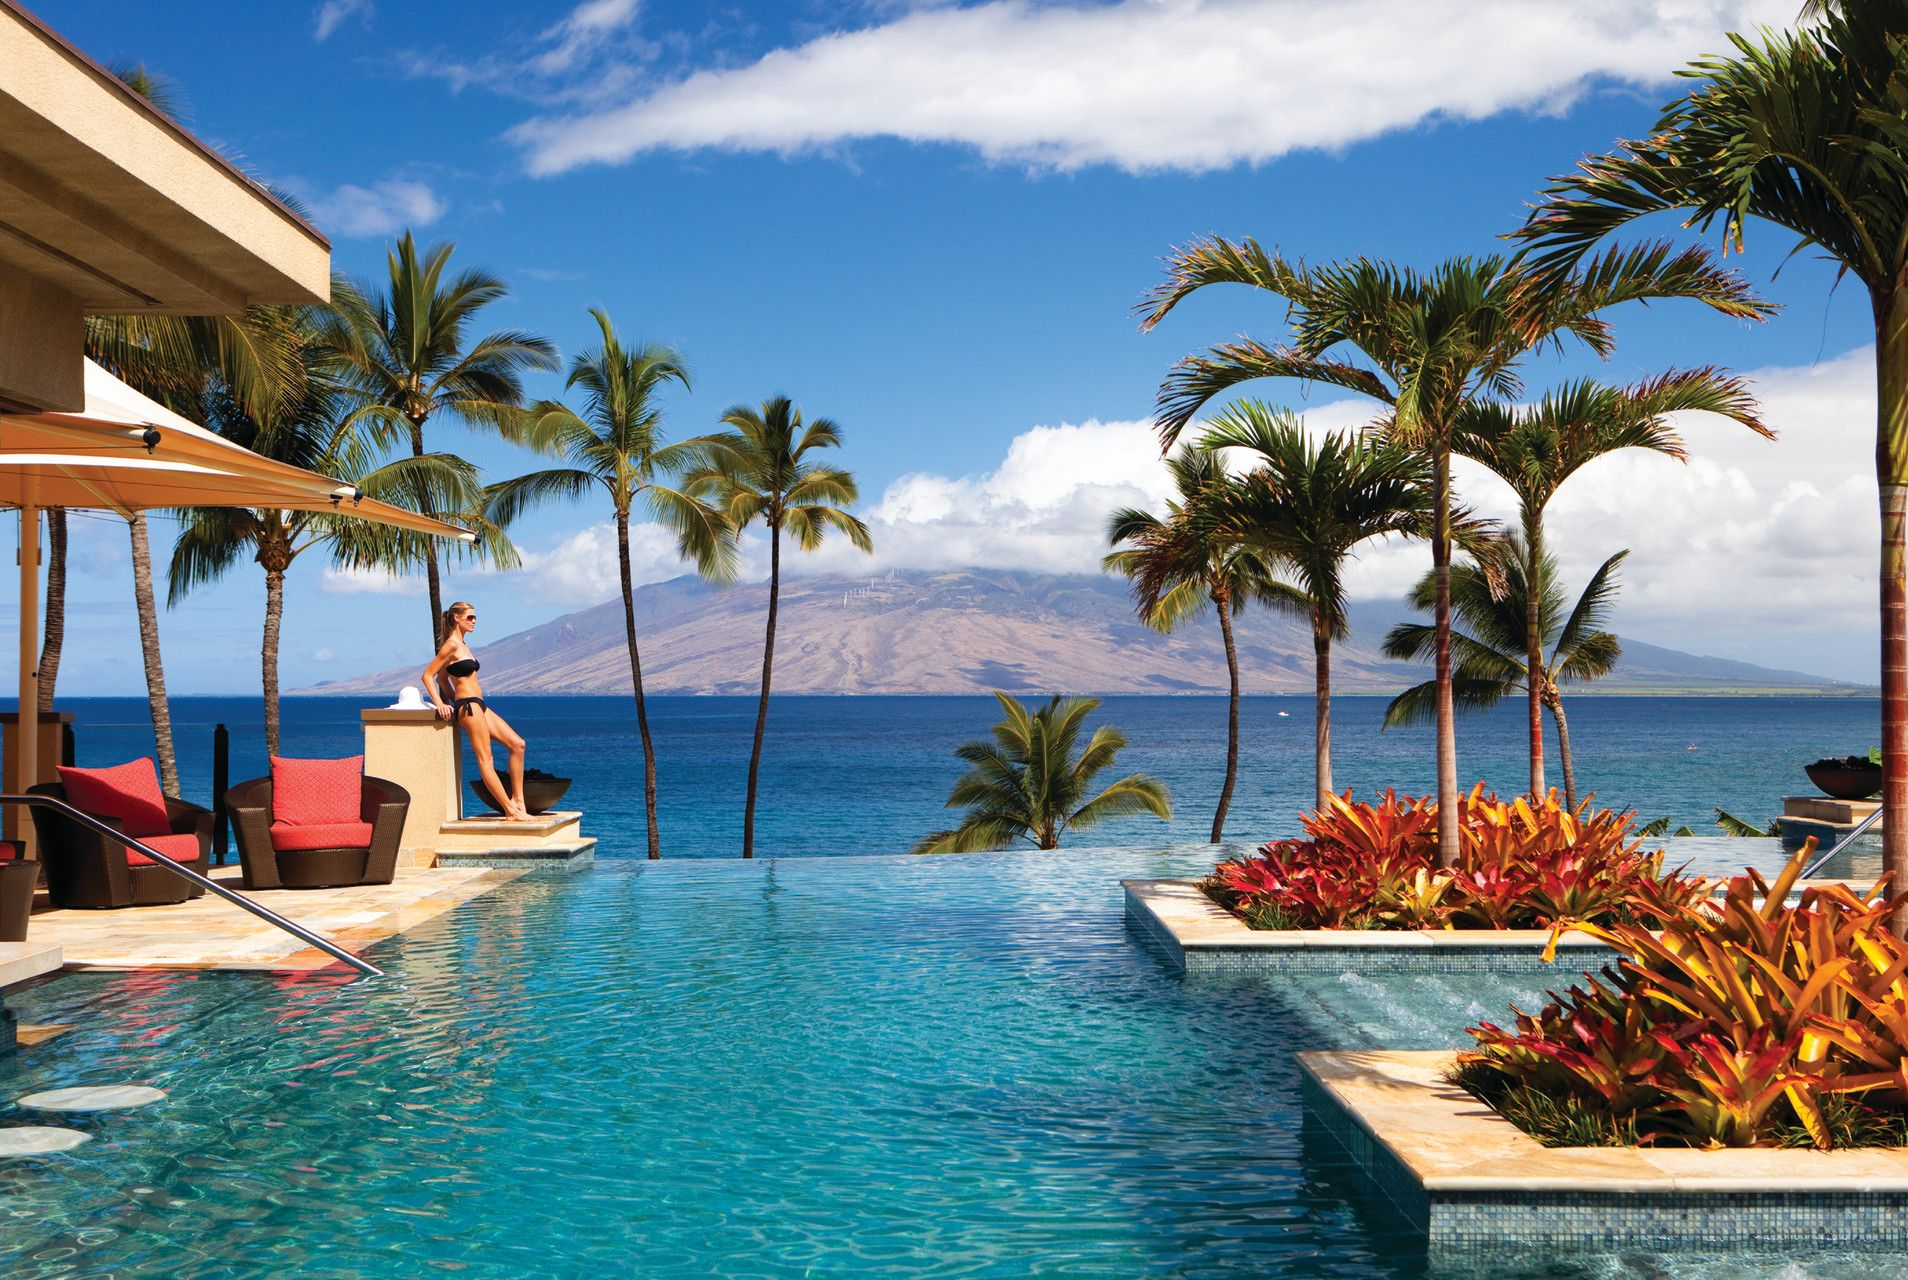 10 Best Luxury Beach Resorts To Heat Up Your Life The Four Seasons Maui